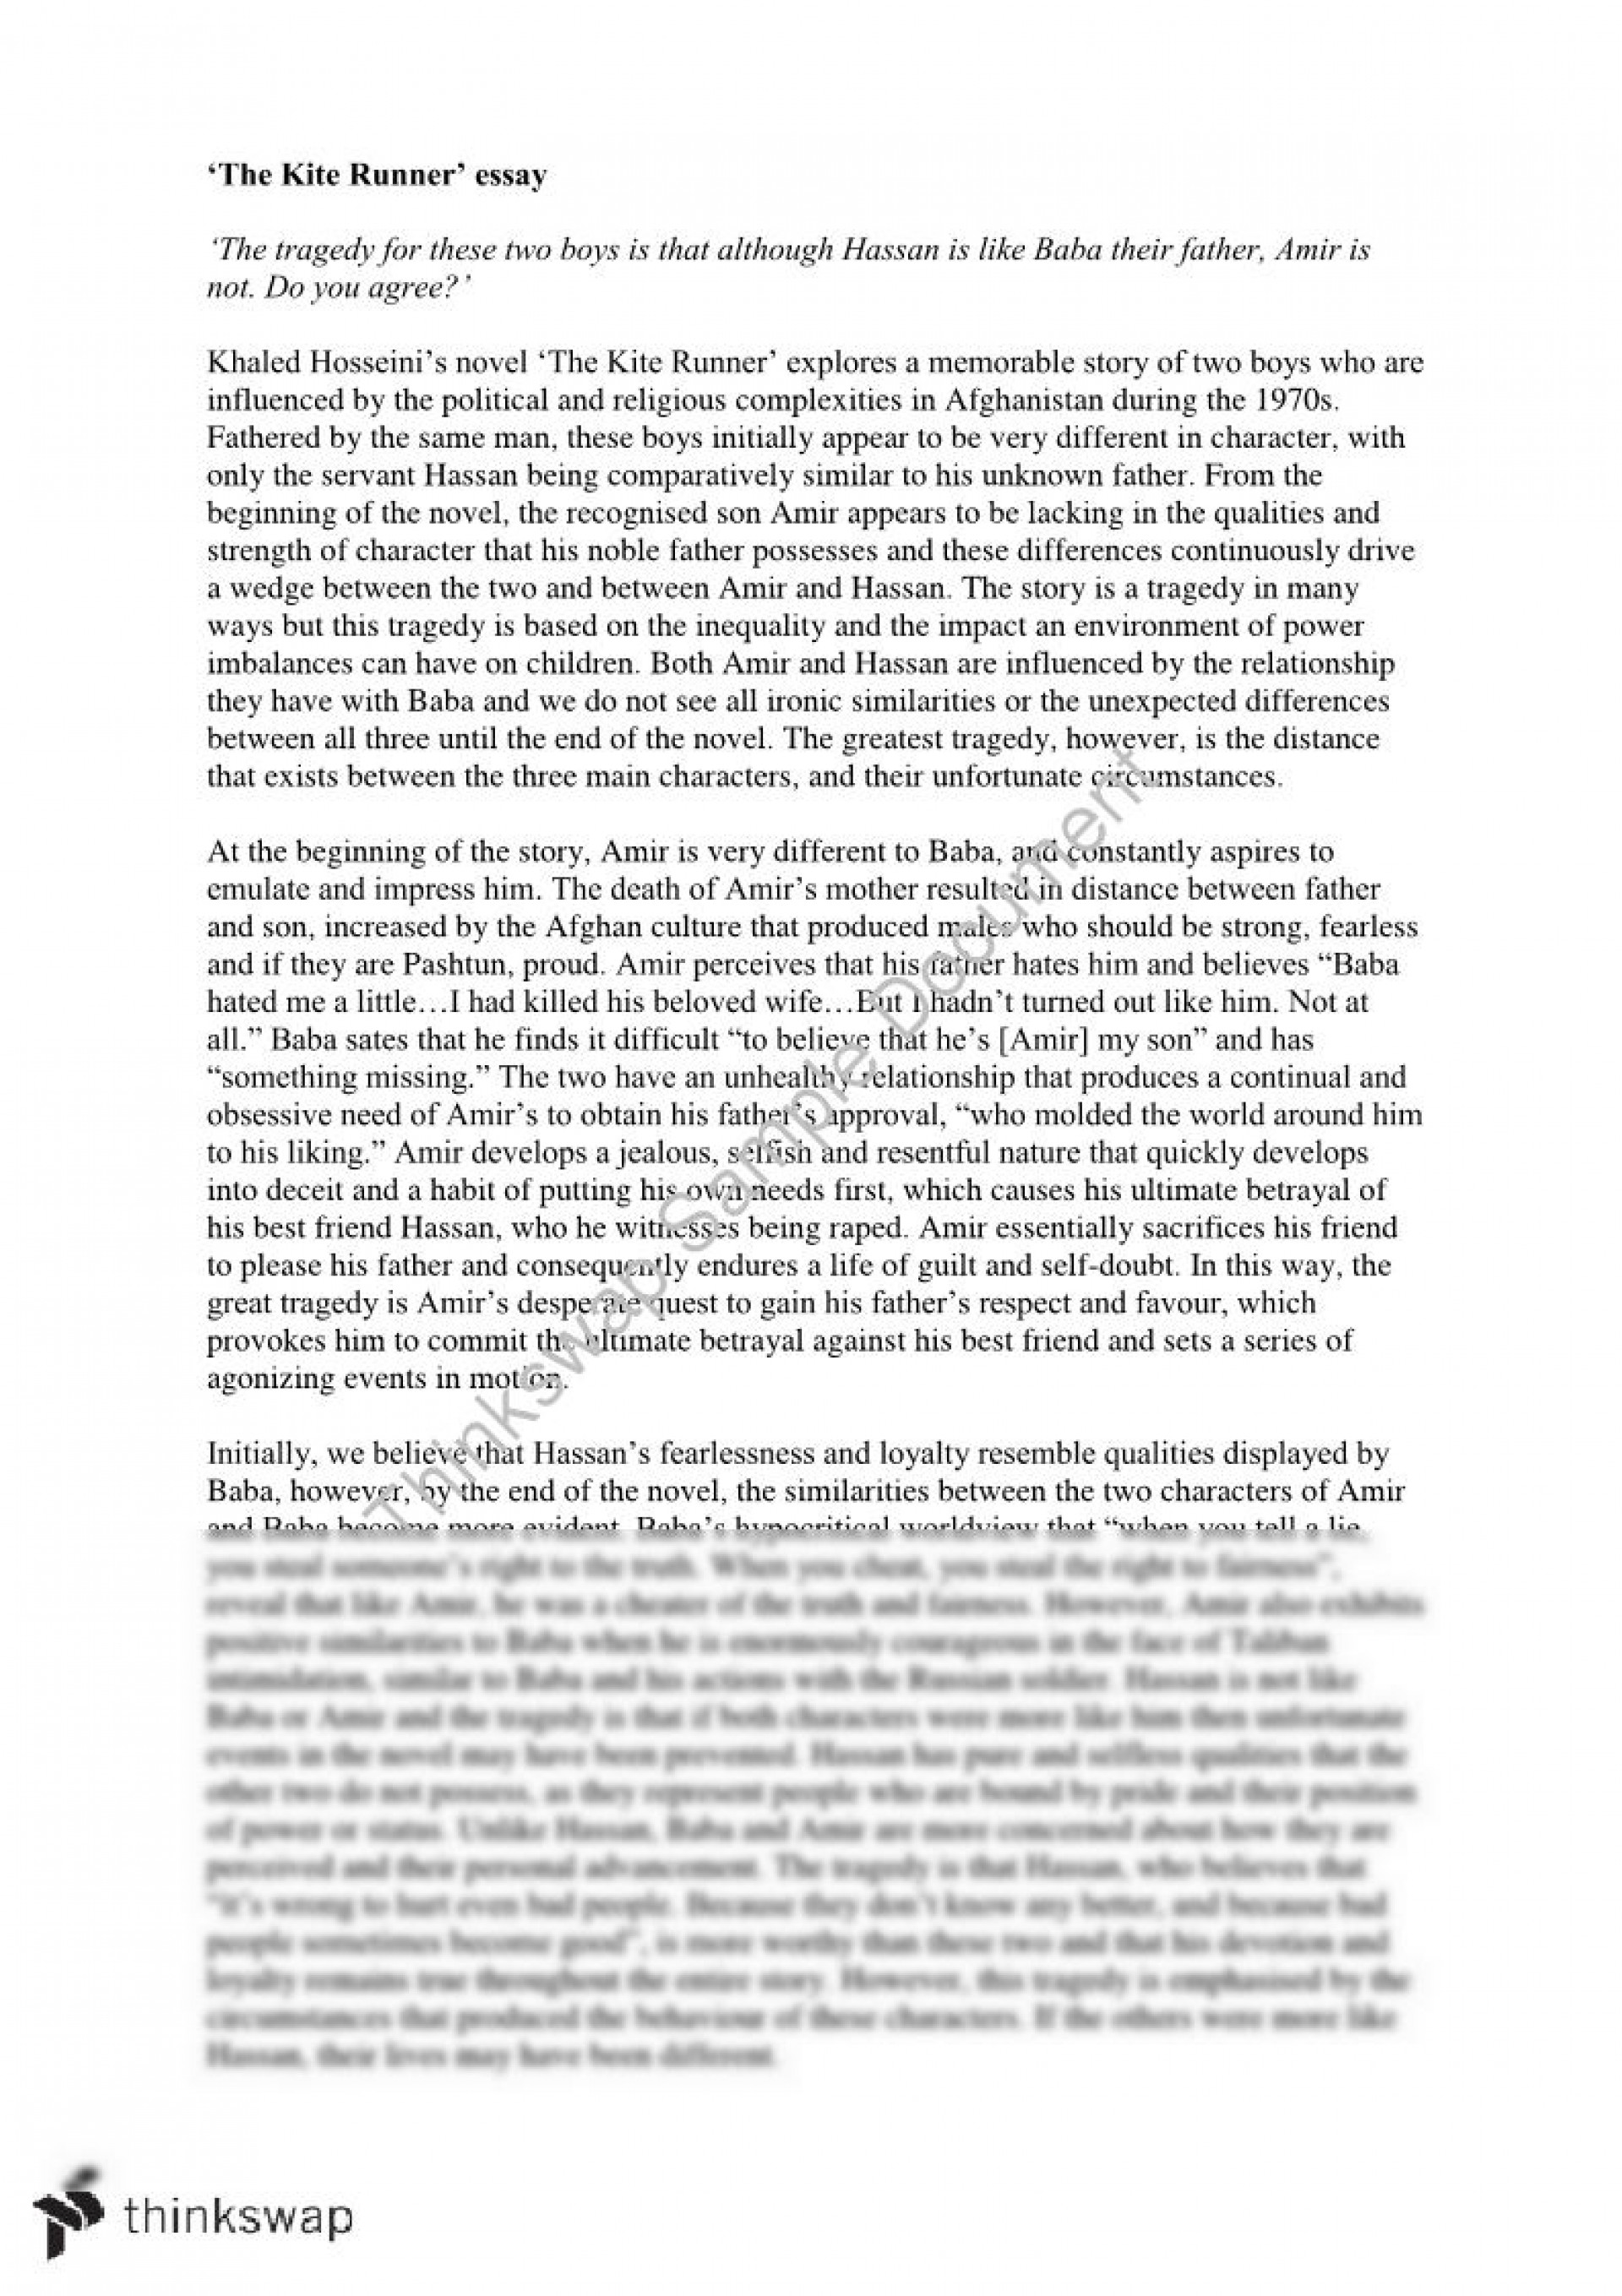 016 Essay Example 64447 The Kite Runner Fadded31 Topics For Life Of Incredible Pi Research Paper Prompts Writing 1920